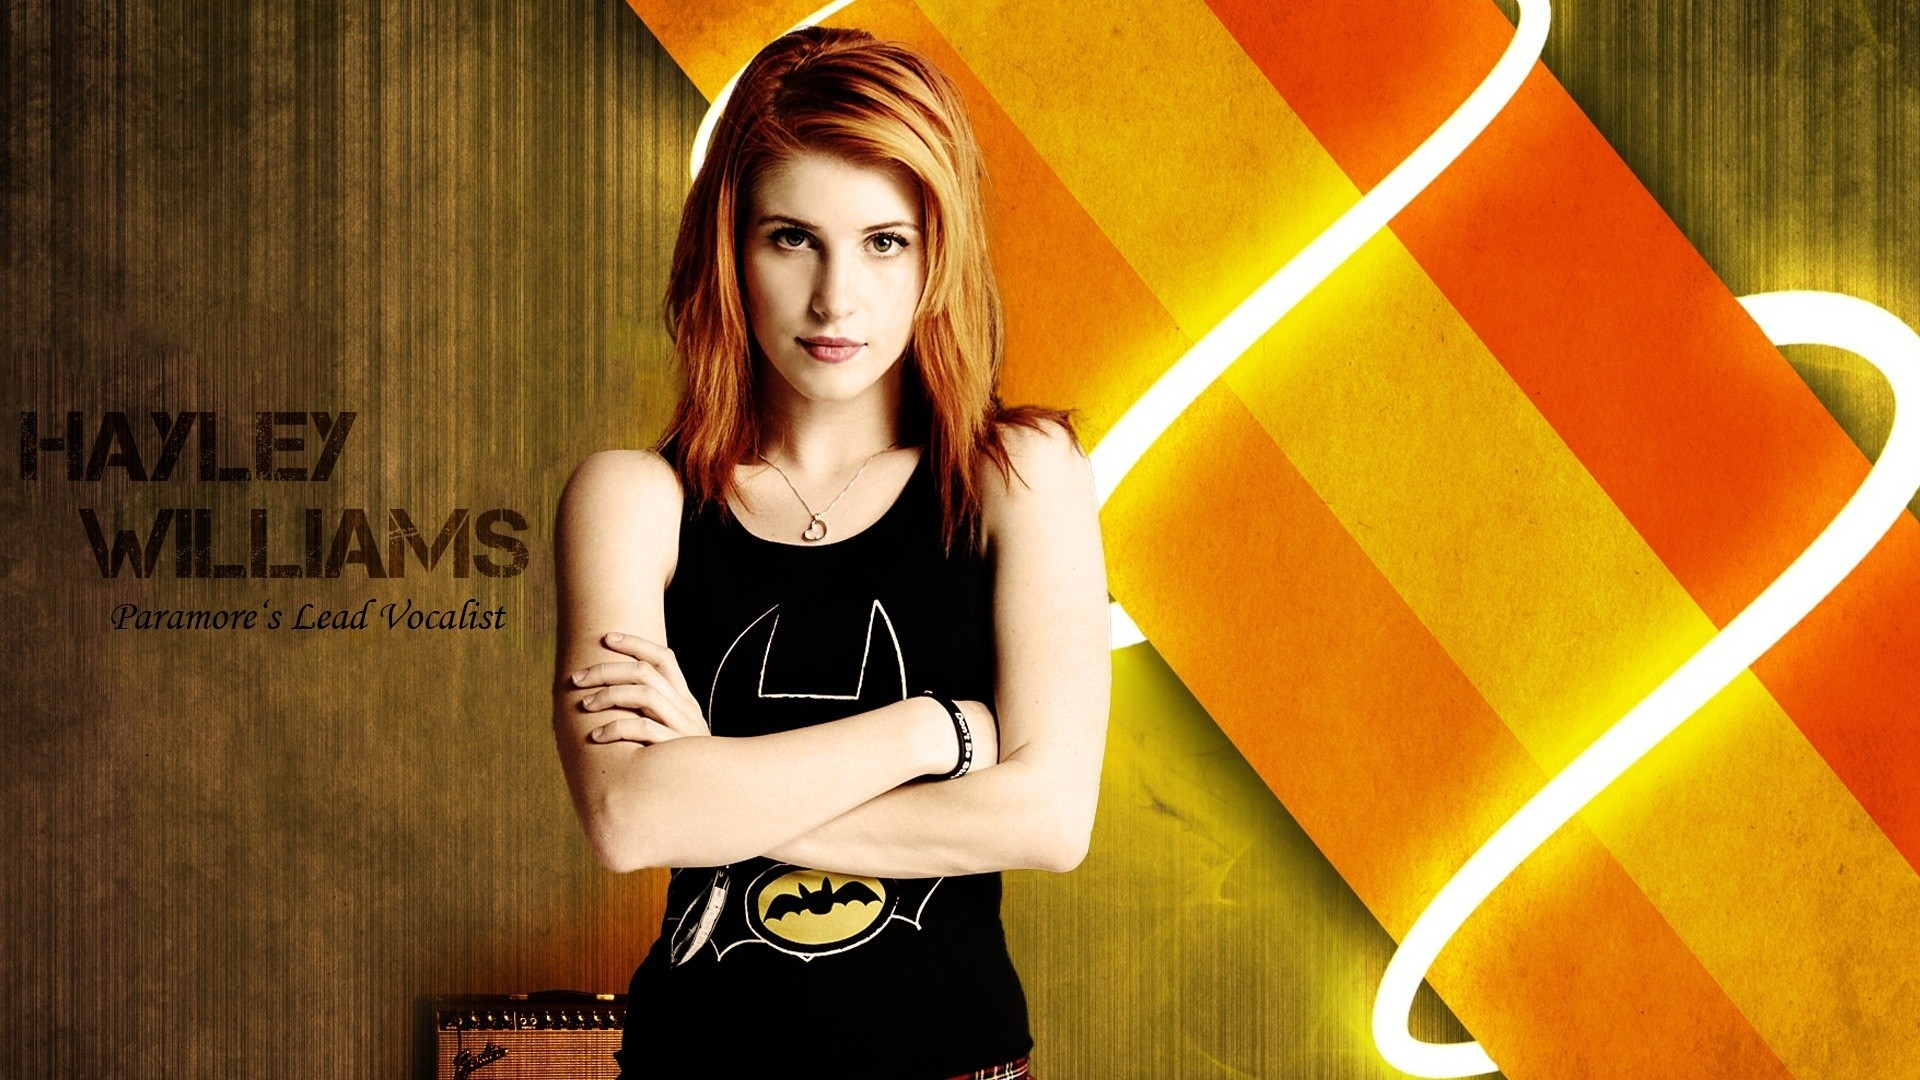 hayley williams woman Batman HD Wallpaper